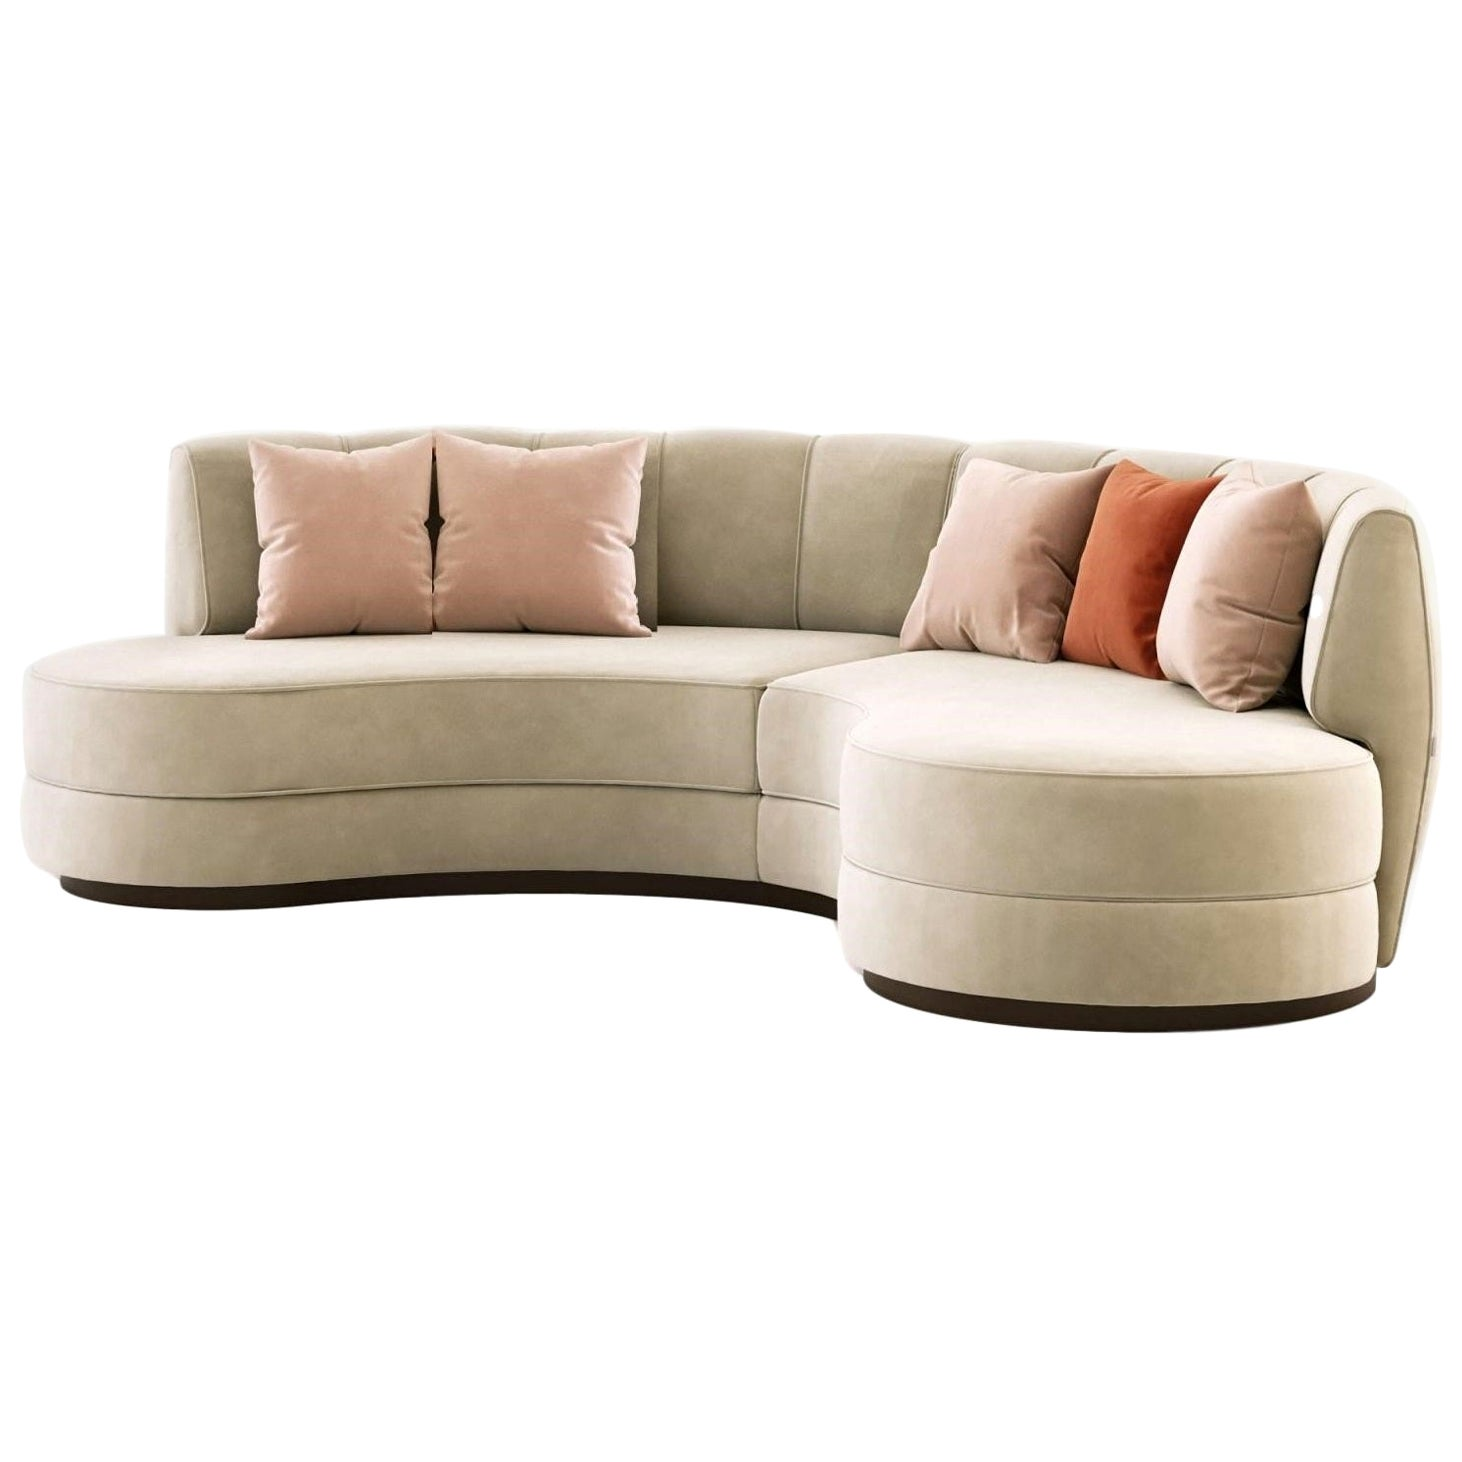 Contemporary Curved Sofa in Linen Beige Velvet and Fumed Eucalyptus Base